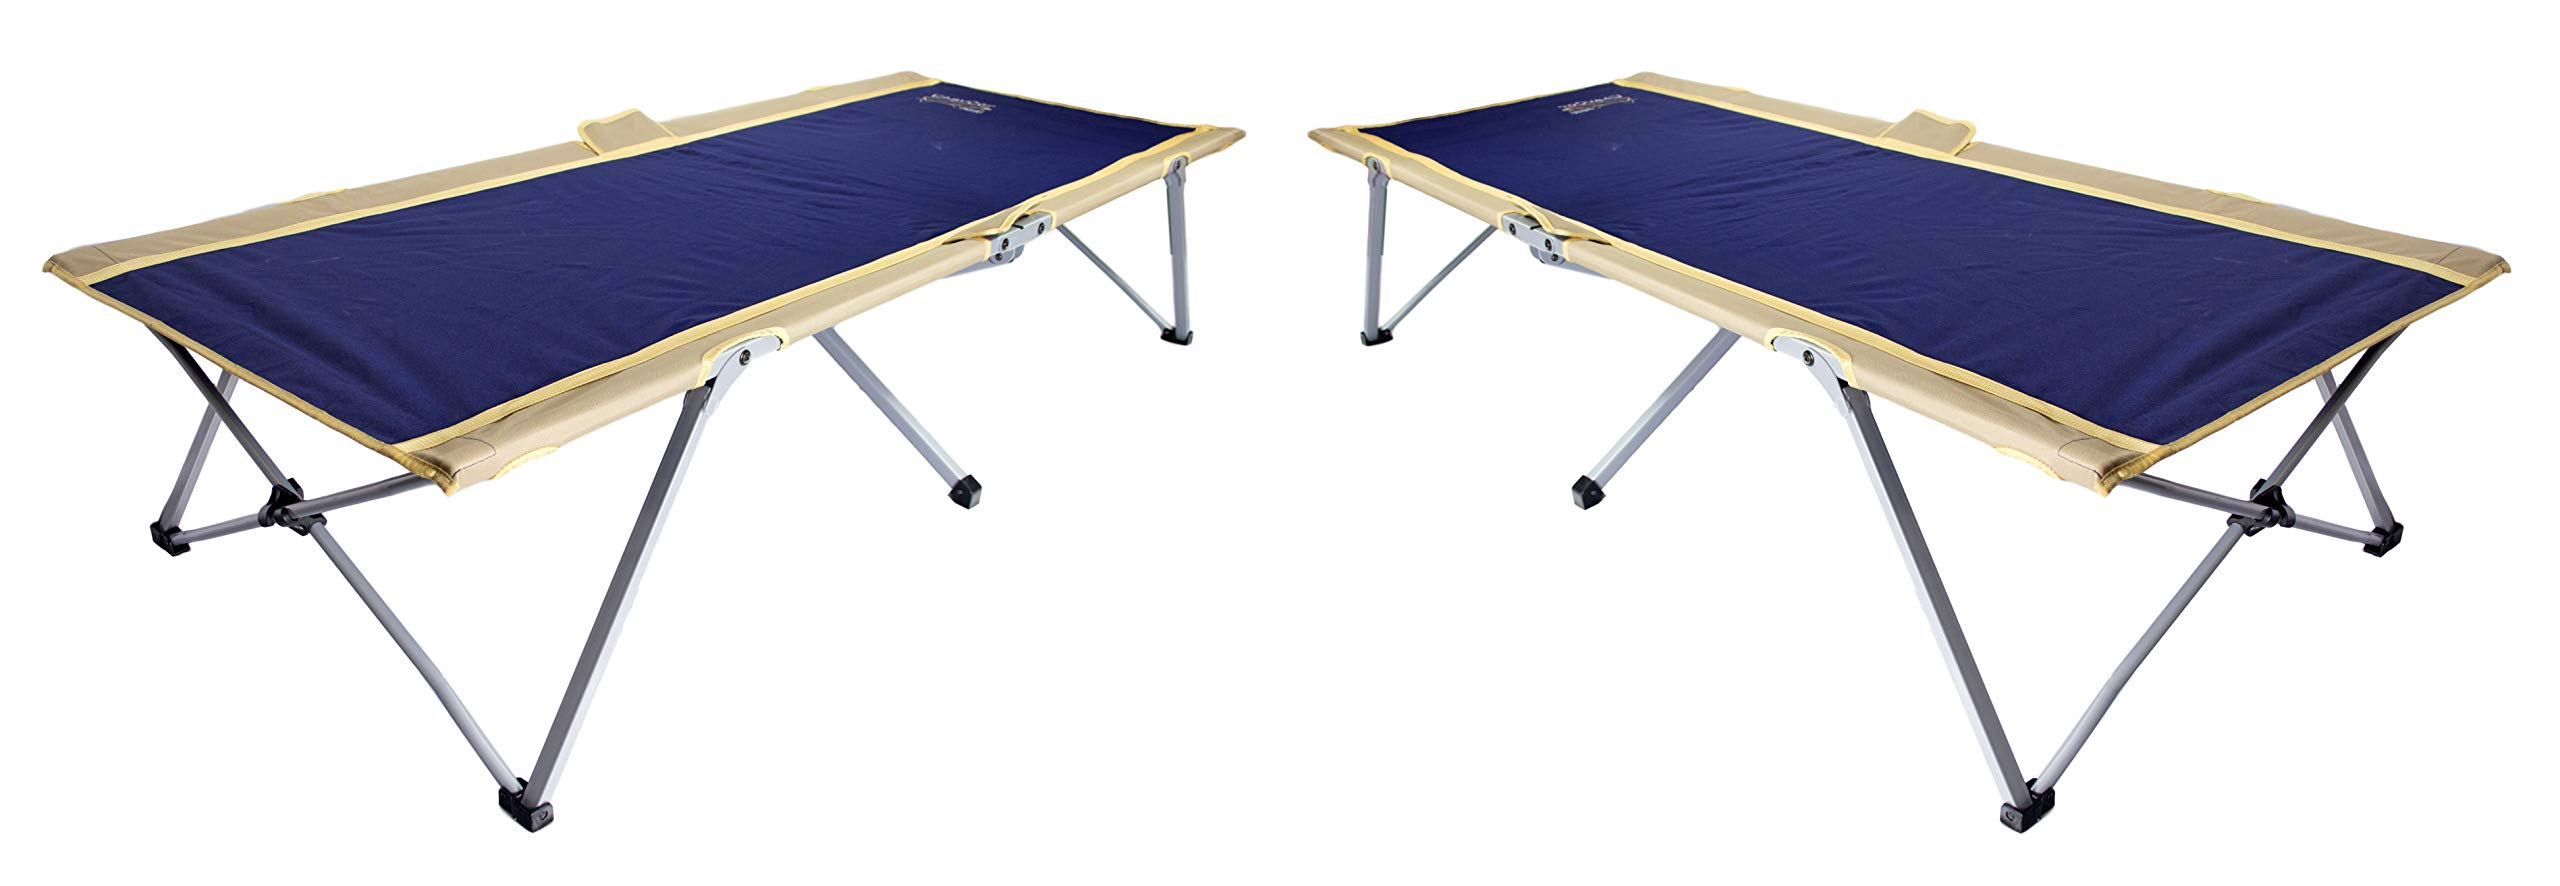 BYER OF MAINE Easy Cot, Ideal for Camping and Hunting, Indoor Guest Bed, Easiest Cot to Assemble, Comes with Travel Bag, Two Pack